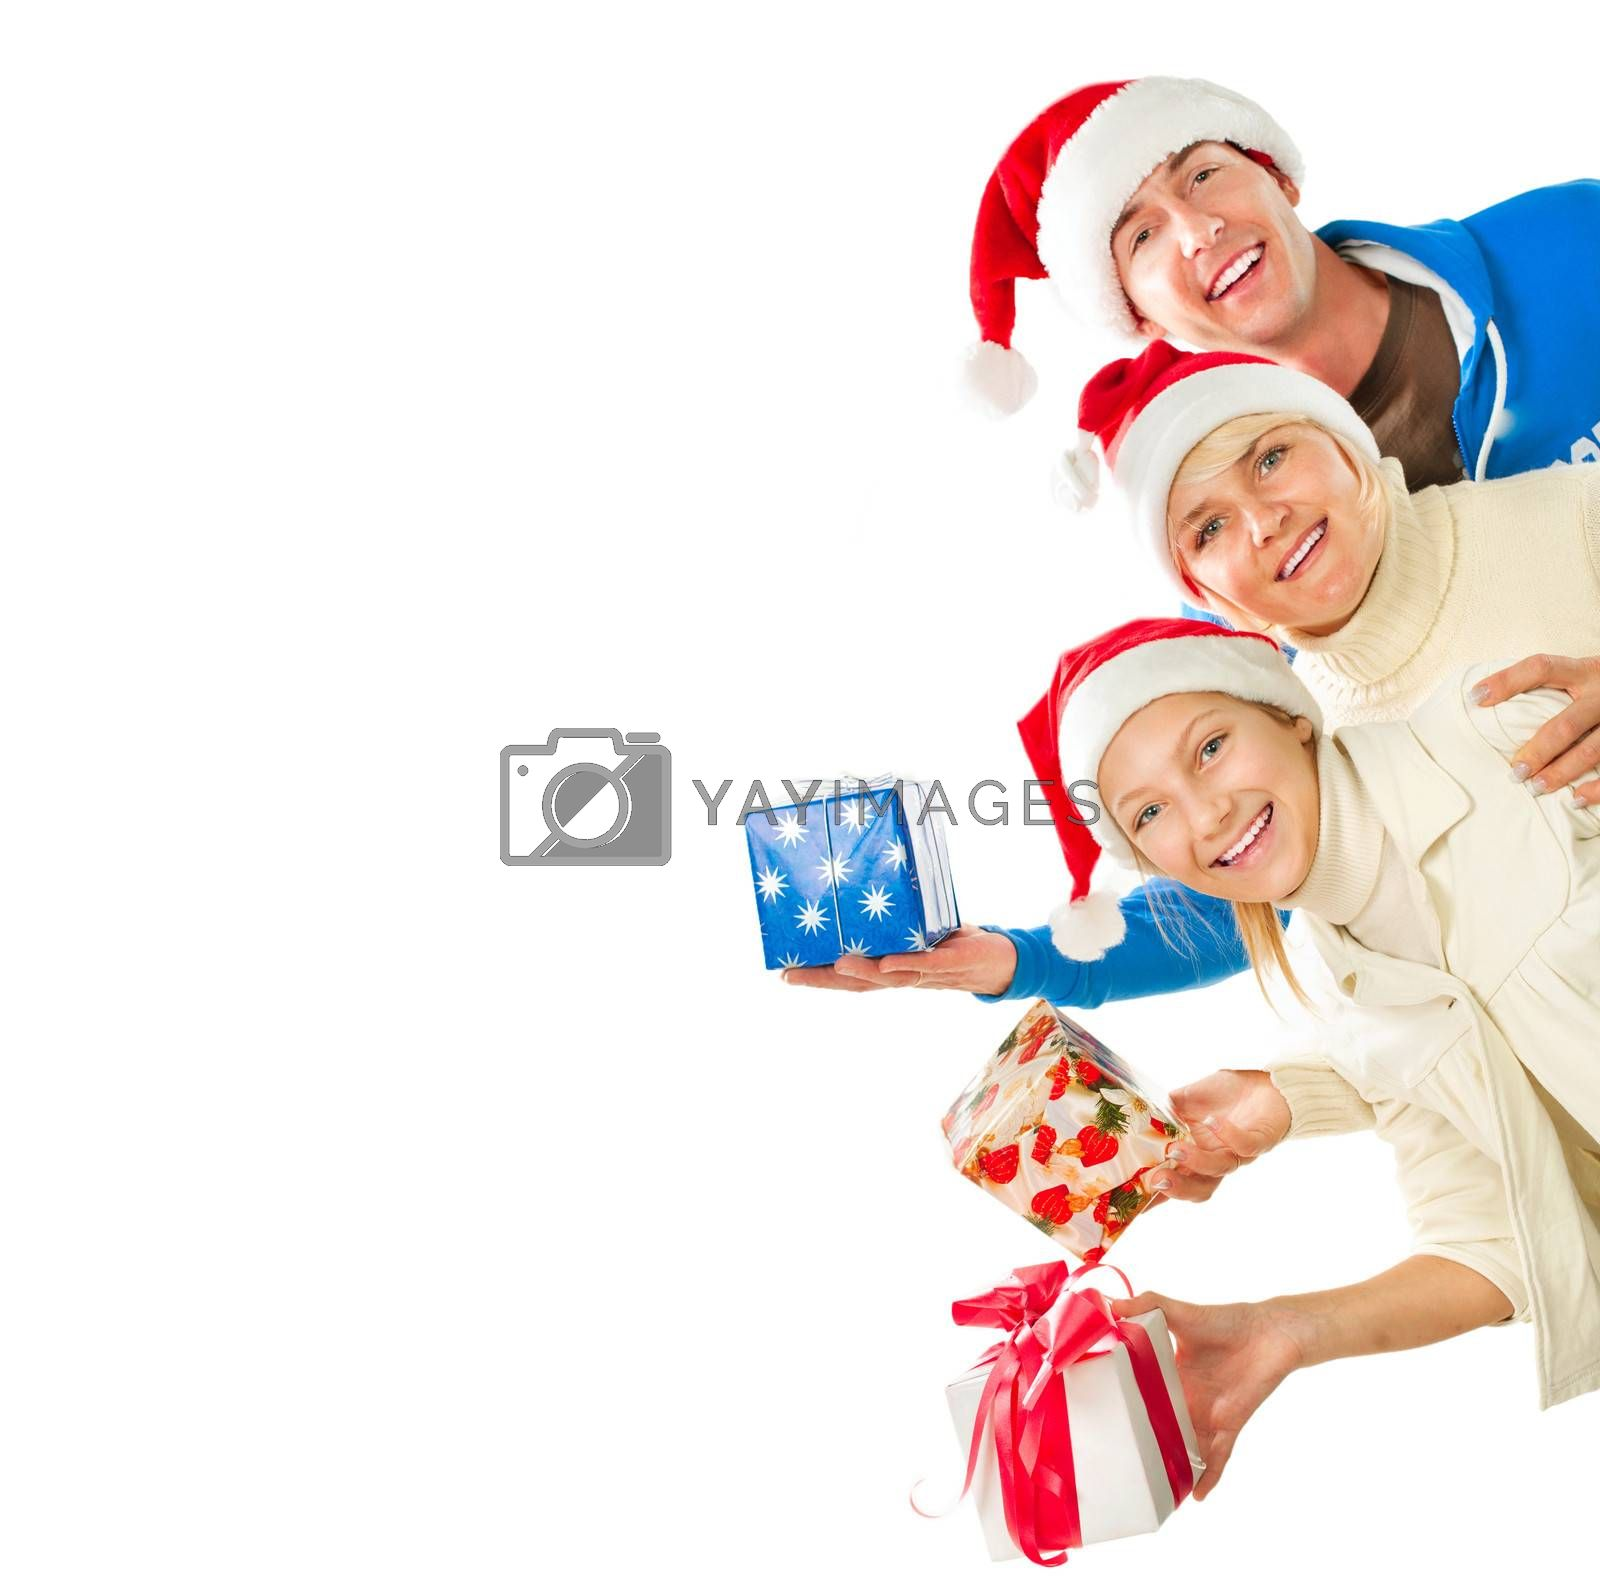 Happy Christmas Family with Gifts. Border Design